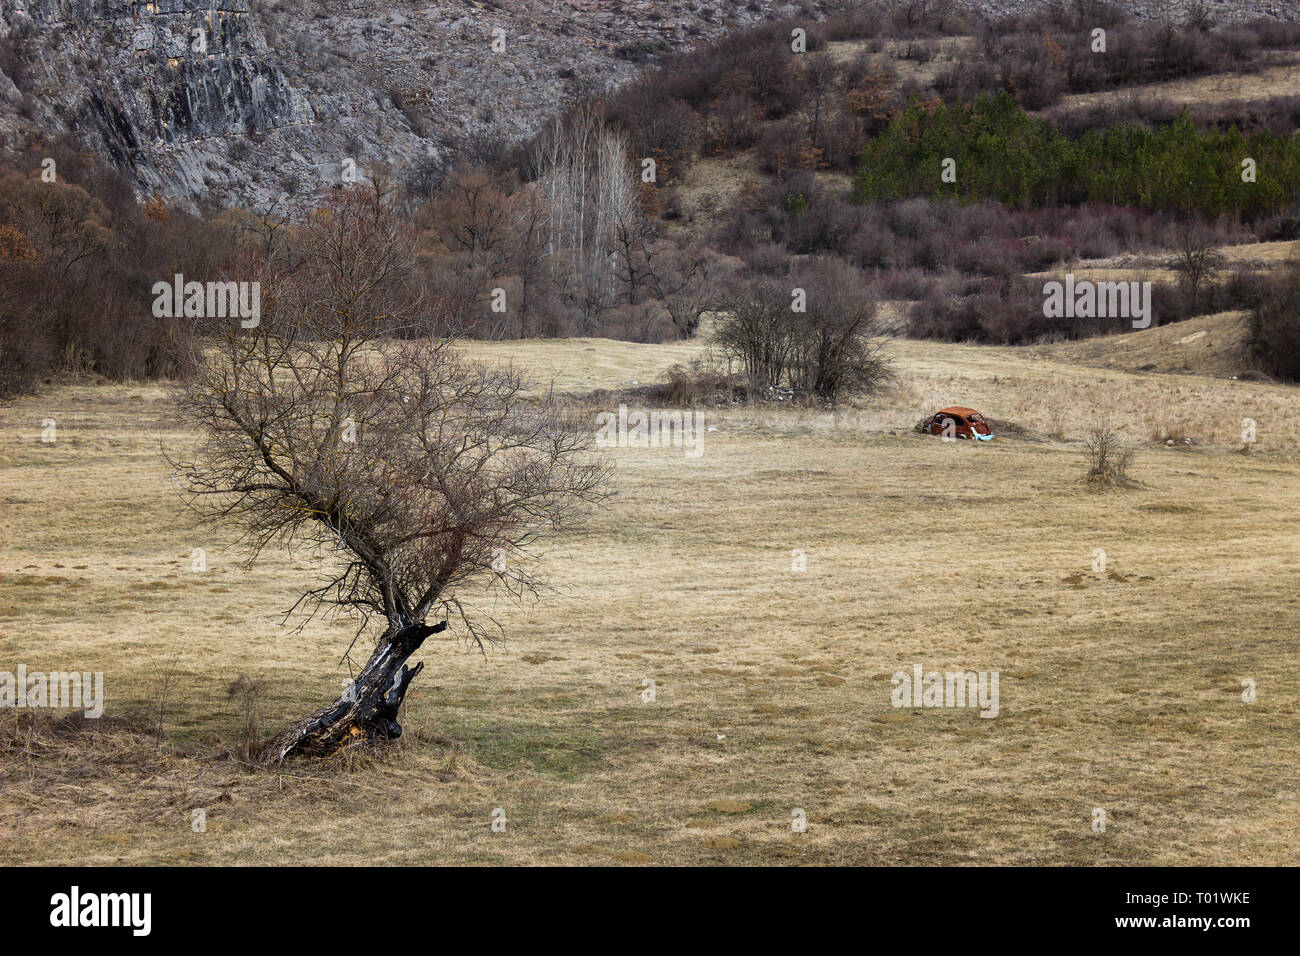 Black foreground tree with no leaves and abandoned rusty car in the middle of the grass field - Stock Image